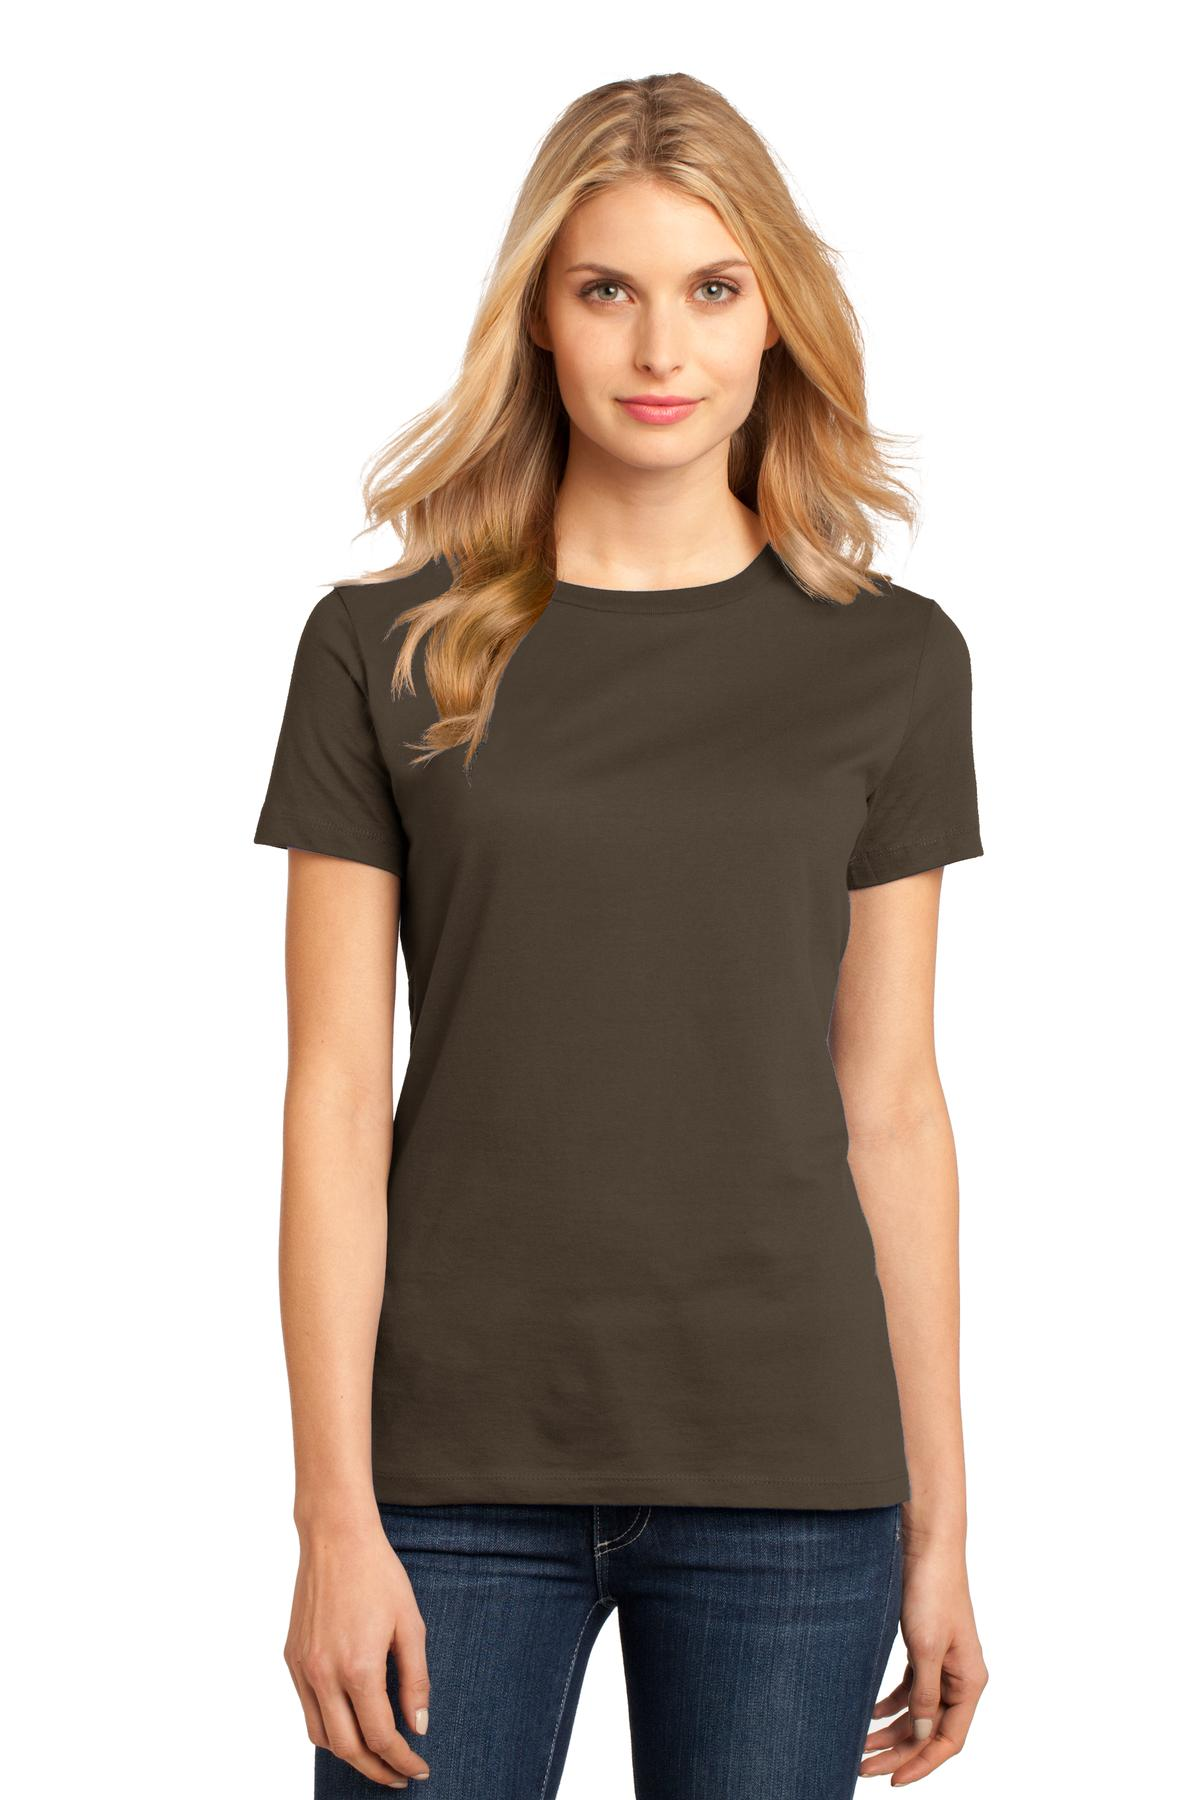 District ®  Women's Perfect Weight ® Tee. DM104L - Espresso